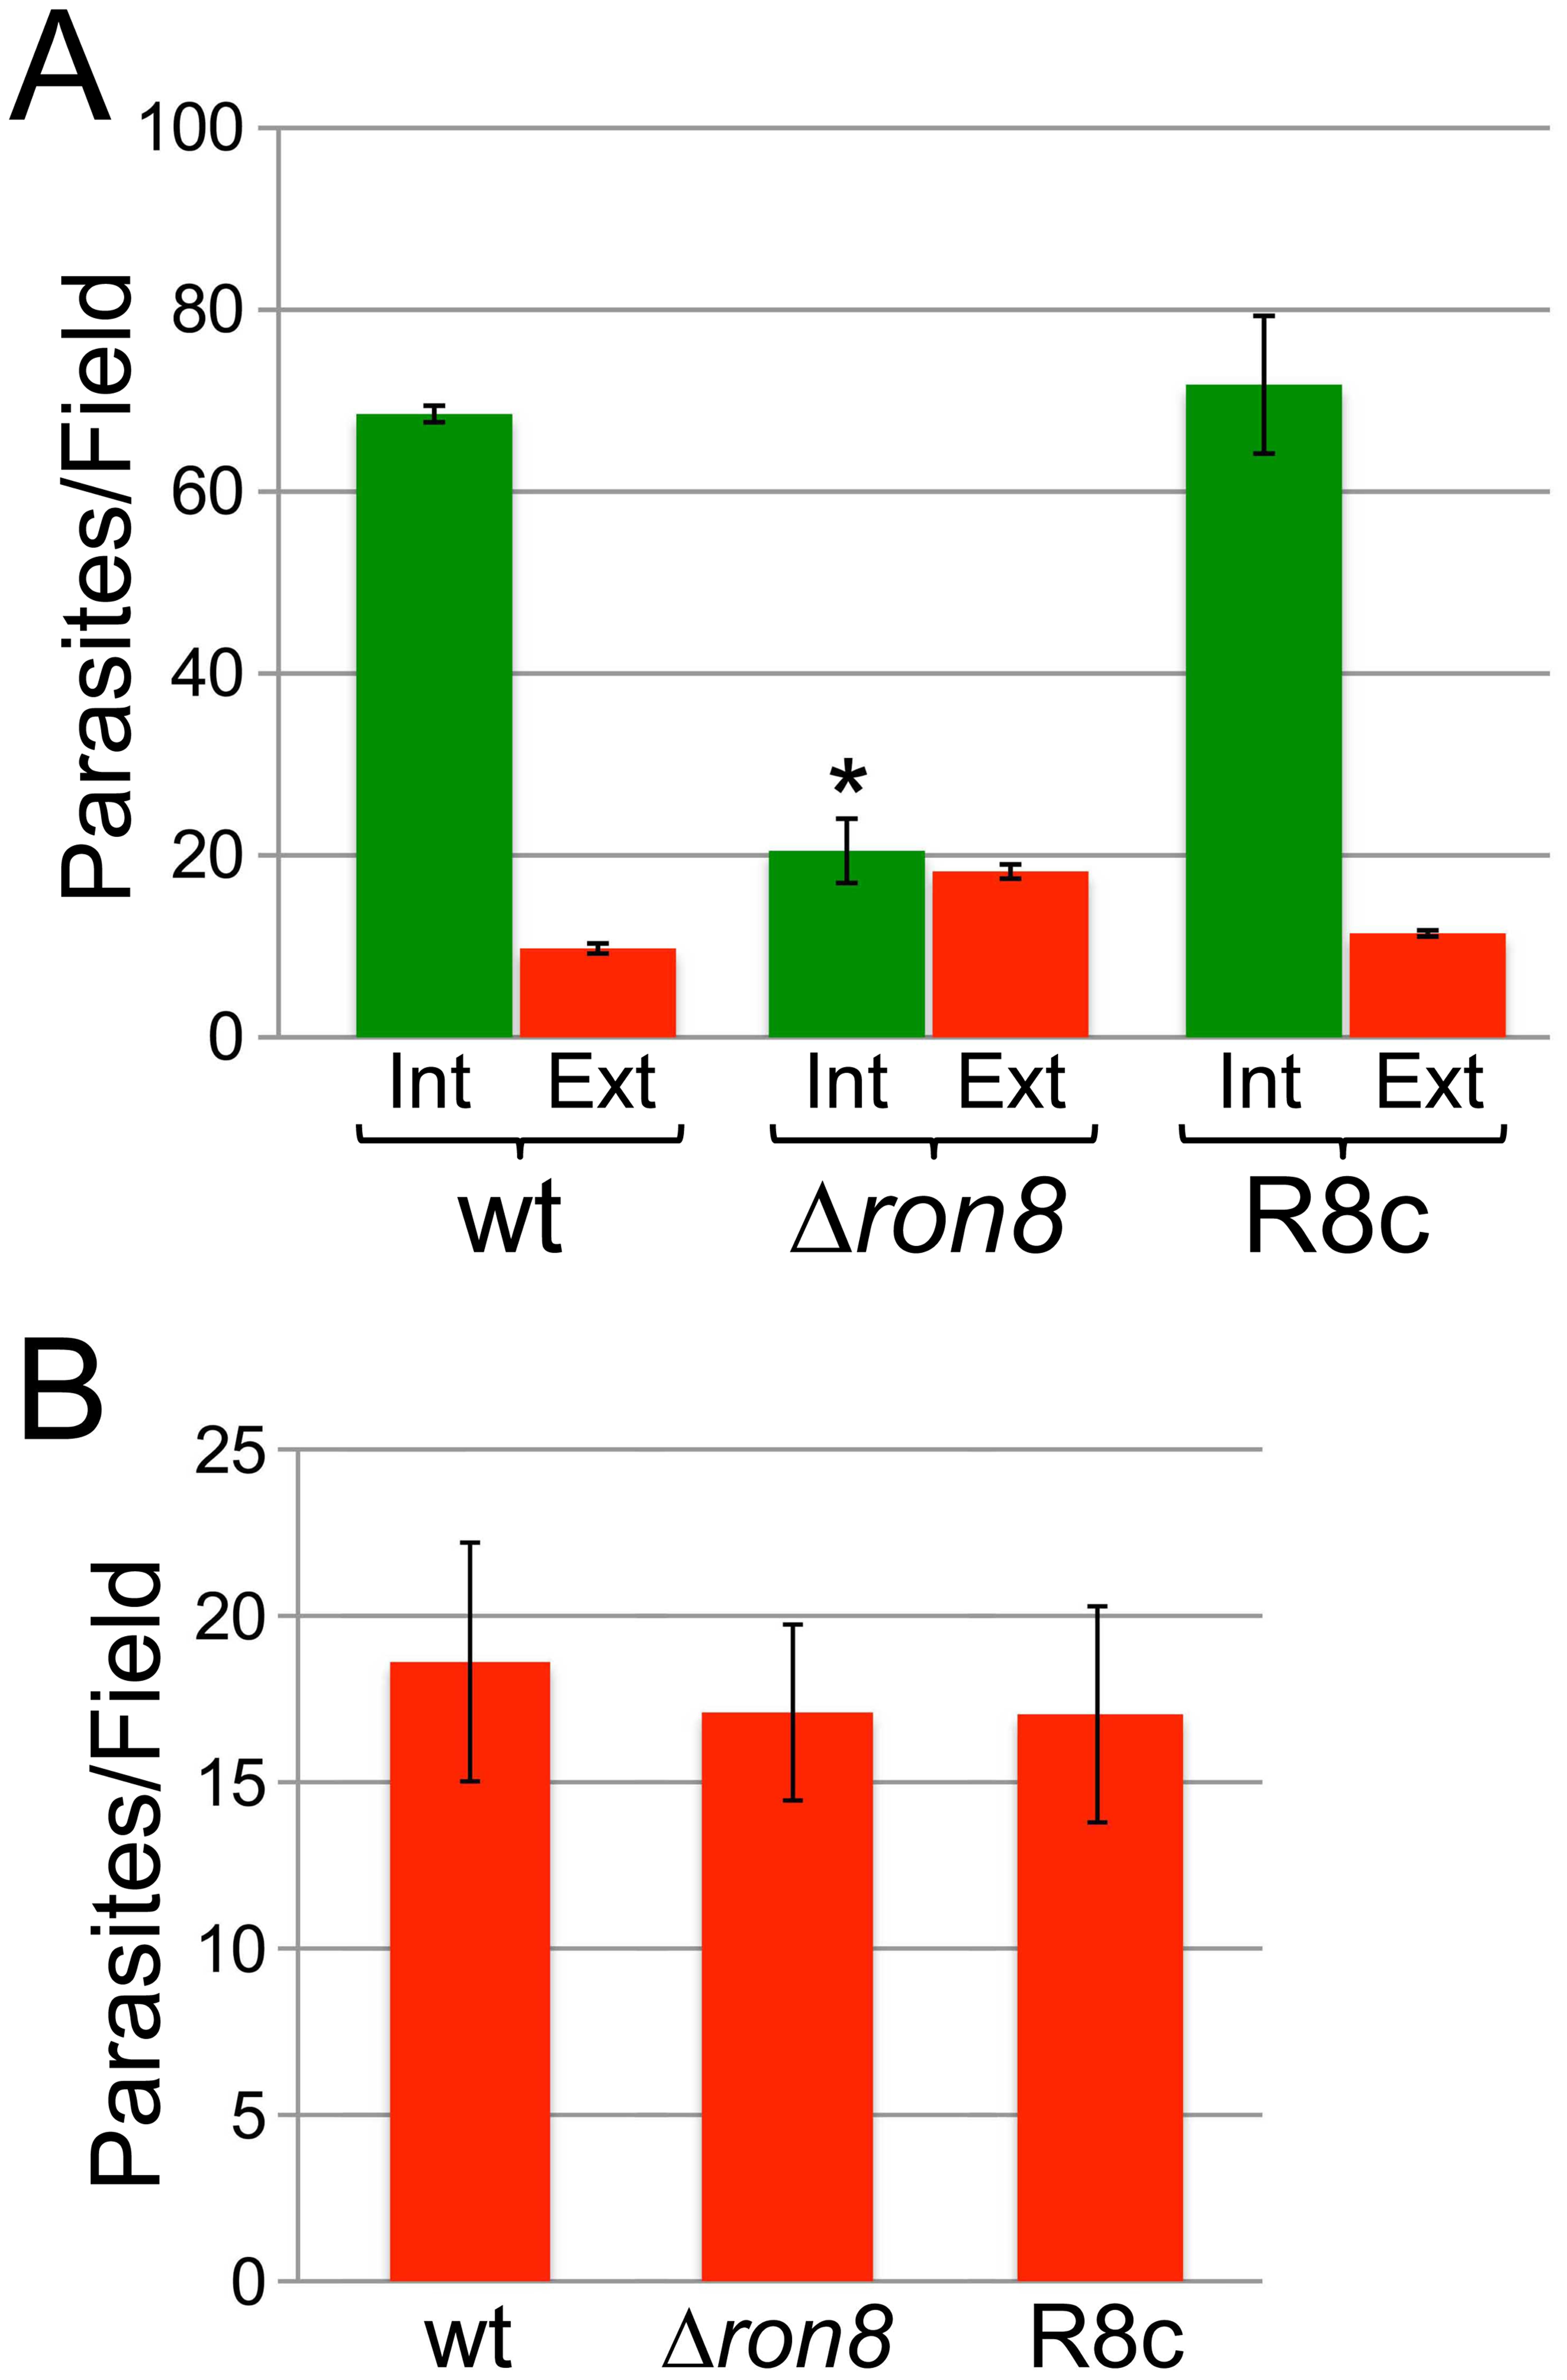 Parasites lacking RON8 are deficient in invasion likely through increased detachment from host cells.